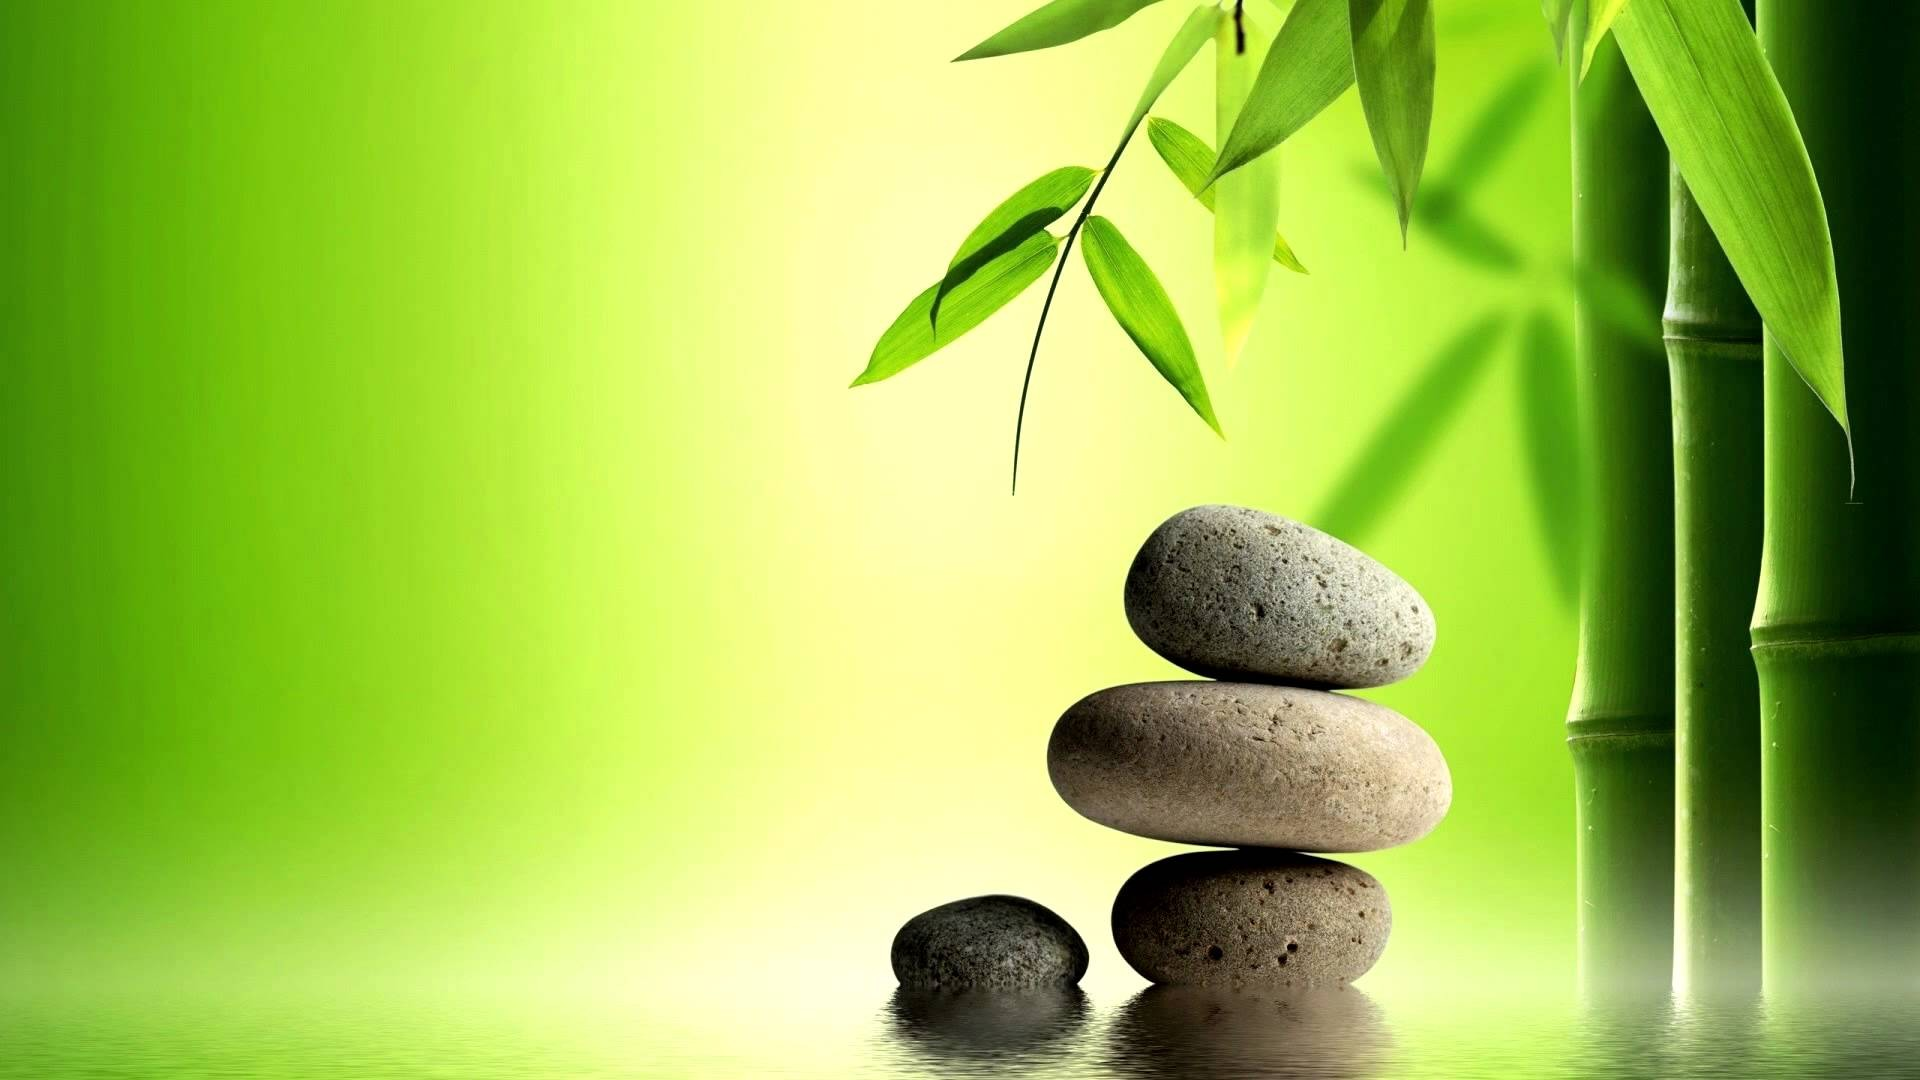 Zen background ·① Download free stunning HD backgrounds ... | 1920 x 1080 jpeg 175kB